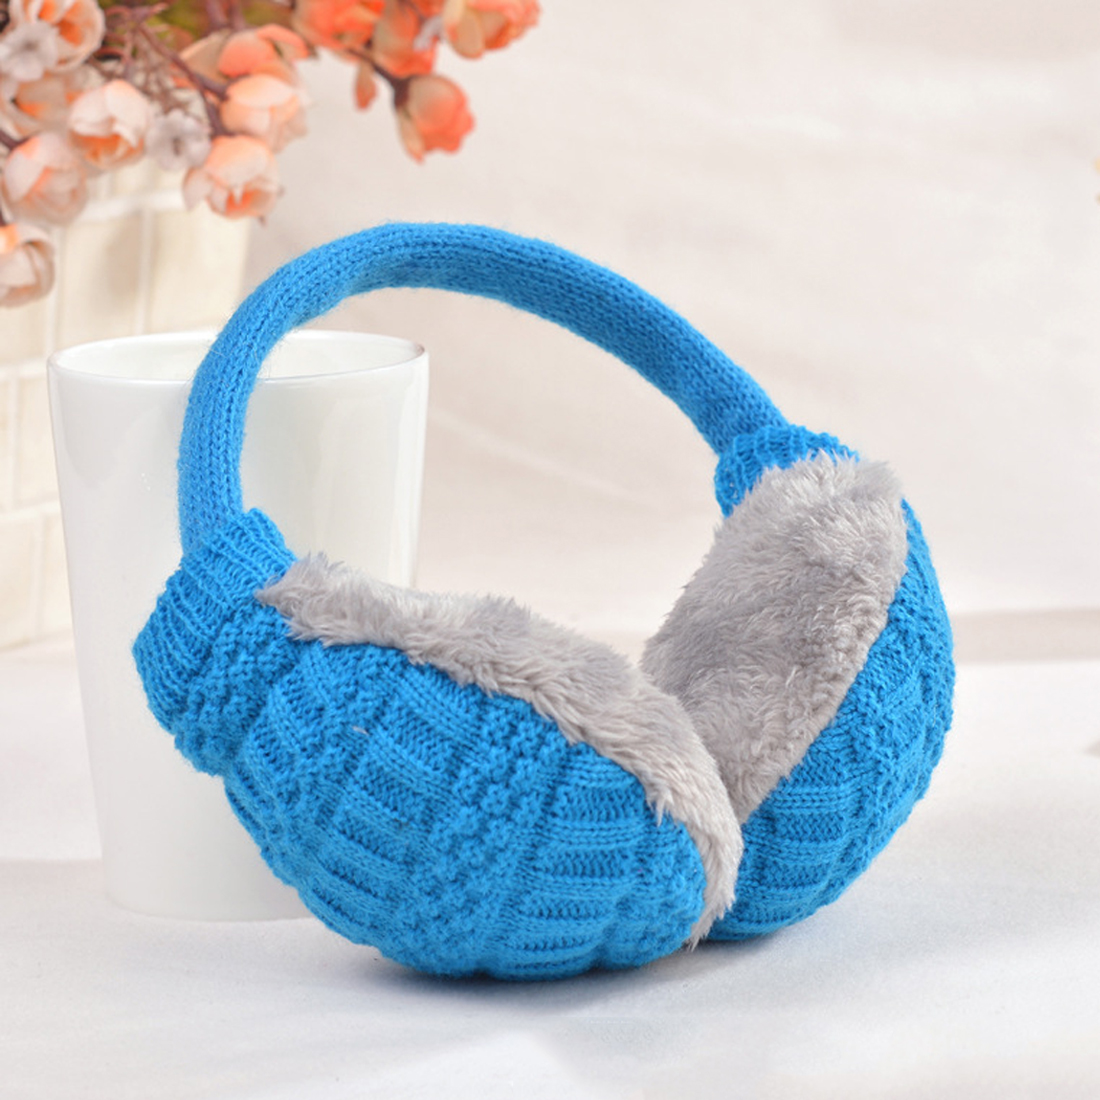 Fashion Winter Ear Cover Women Warm Knitted Earmuffs Ear Warmers Women Girls Plush Ear Muffs Earlap Warmer Headband